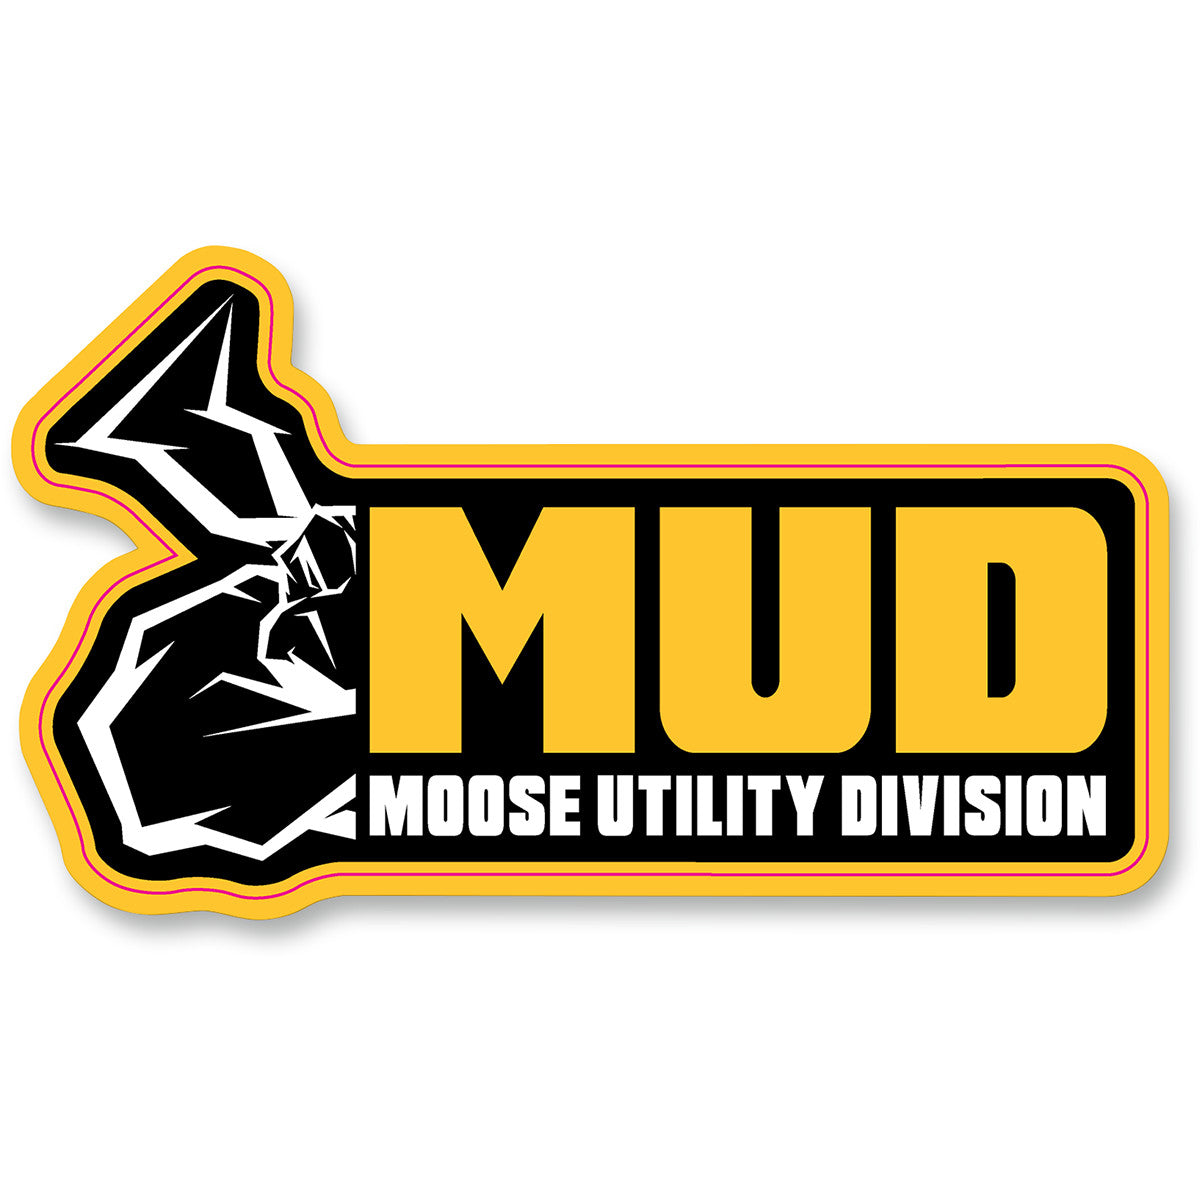 MOOSE Moose Utility Division Decal